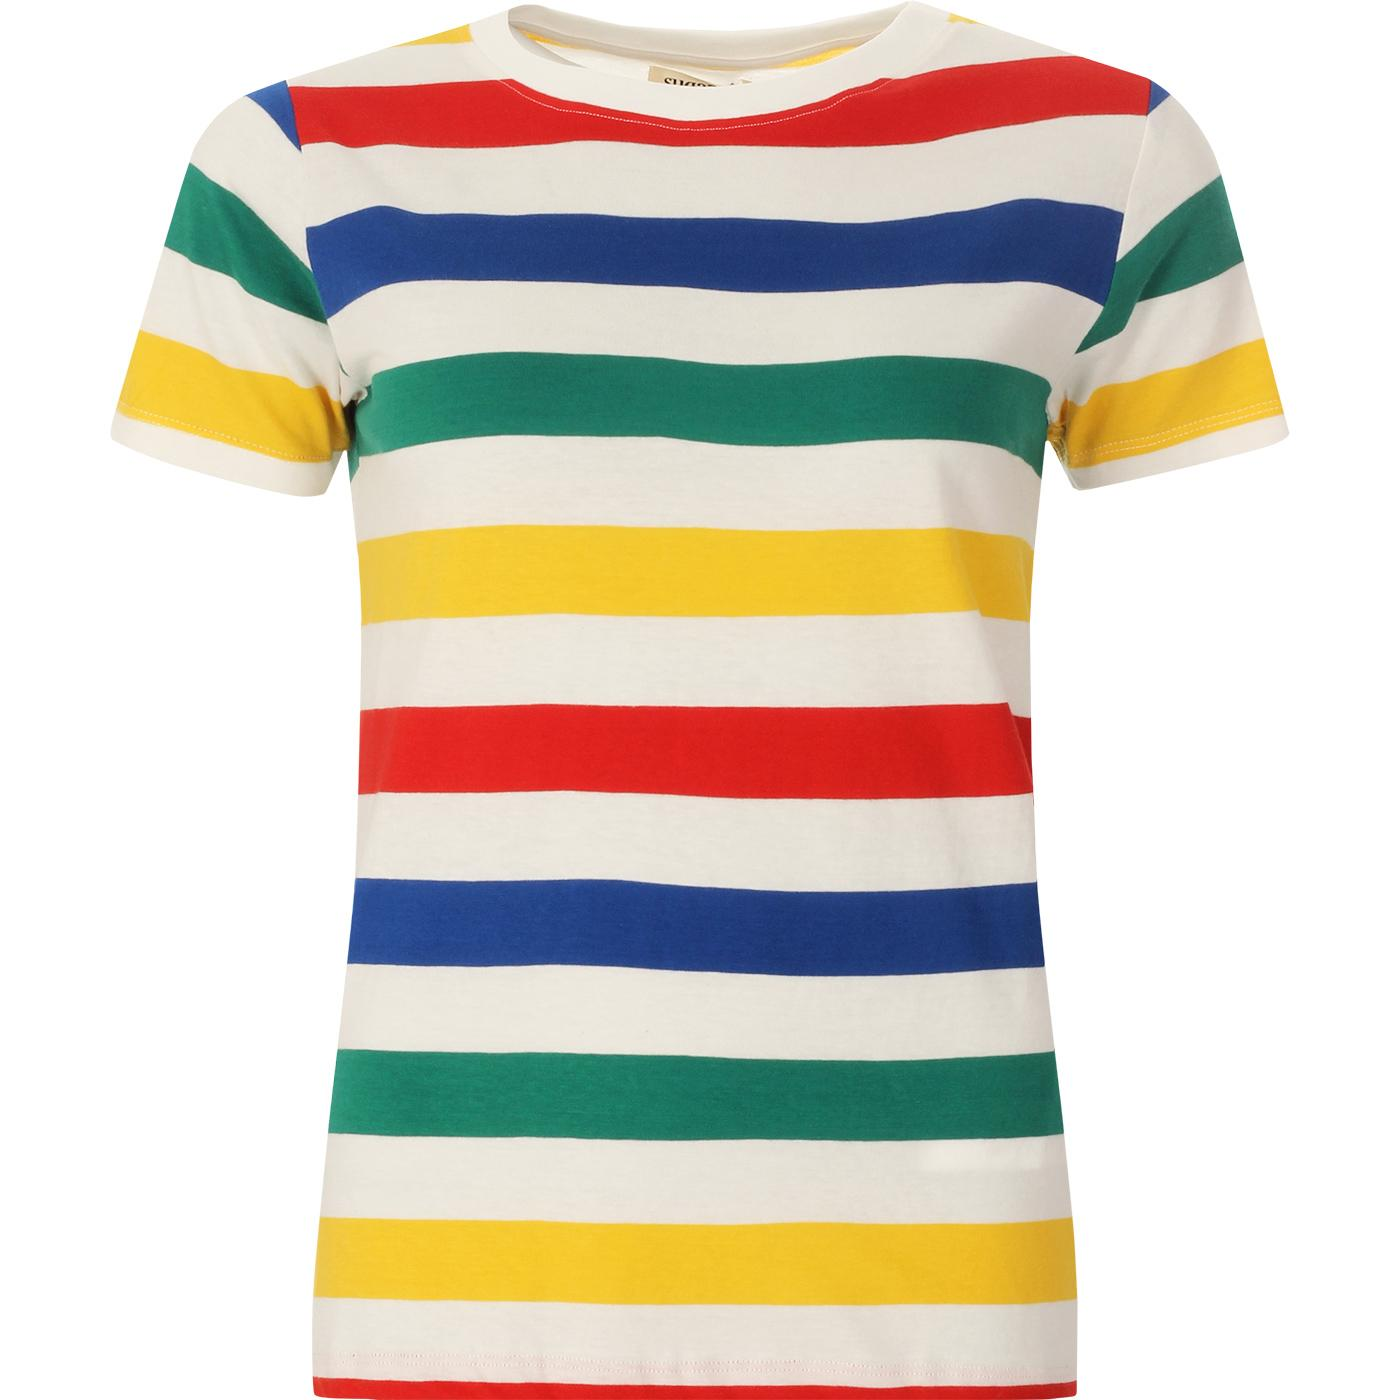 Maggie SUGARHILL BRIGHTON Retro Surf Stripe Tee